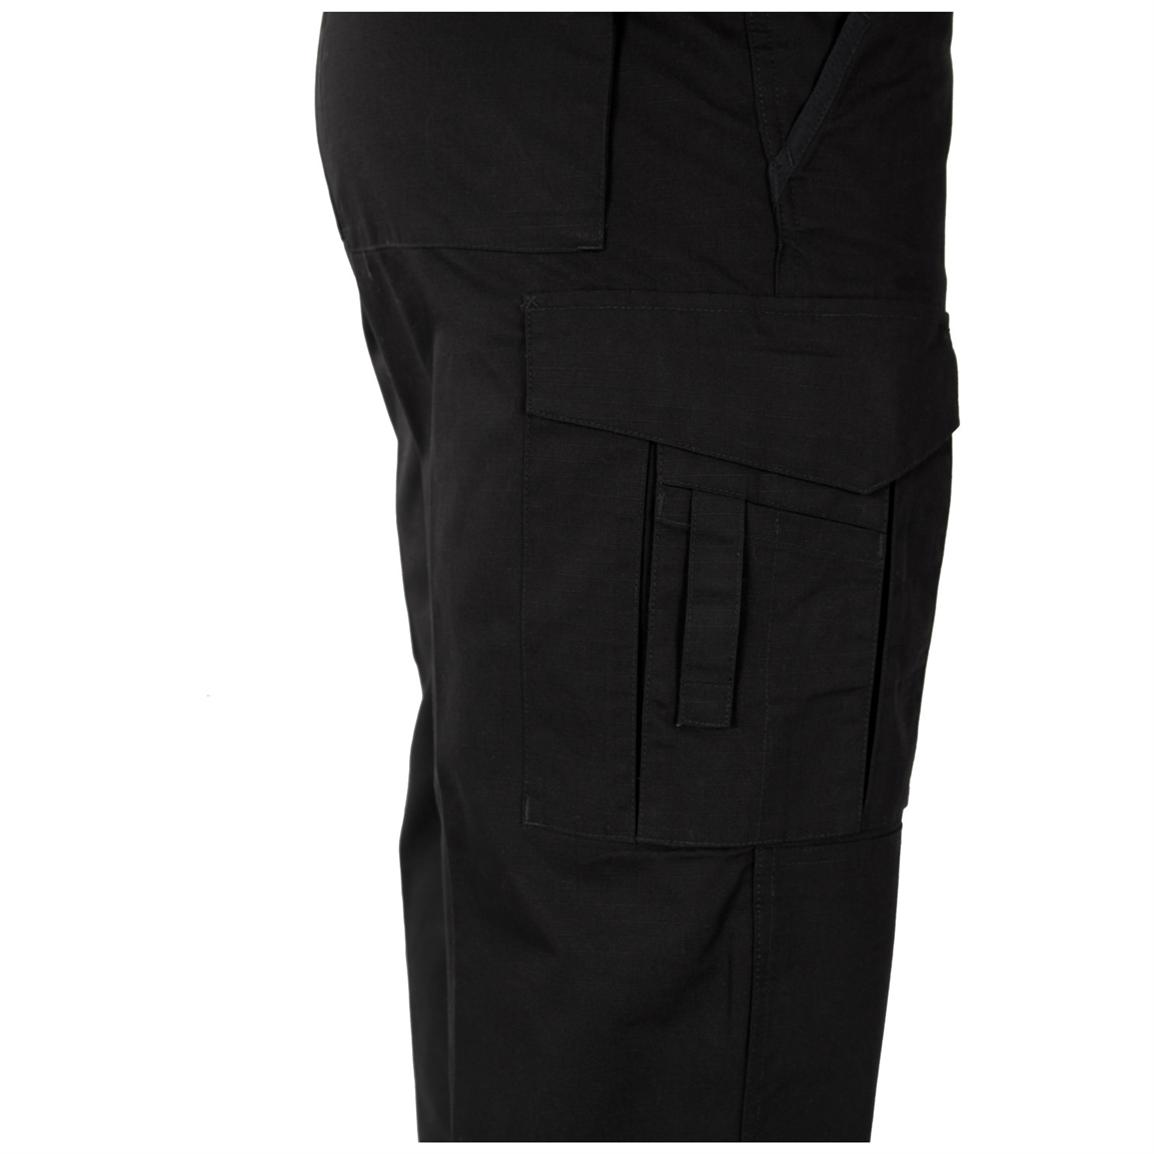 17-pocket design for EMS accessories, including two six-way cargo pockets